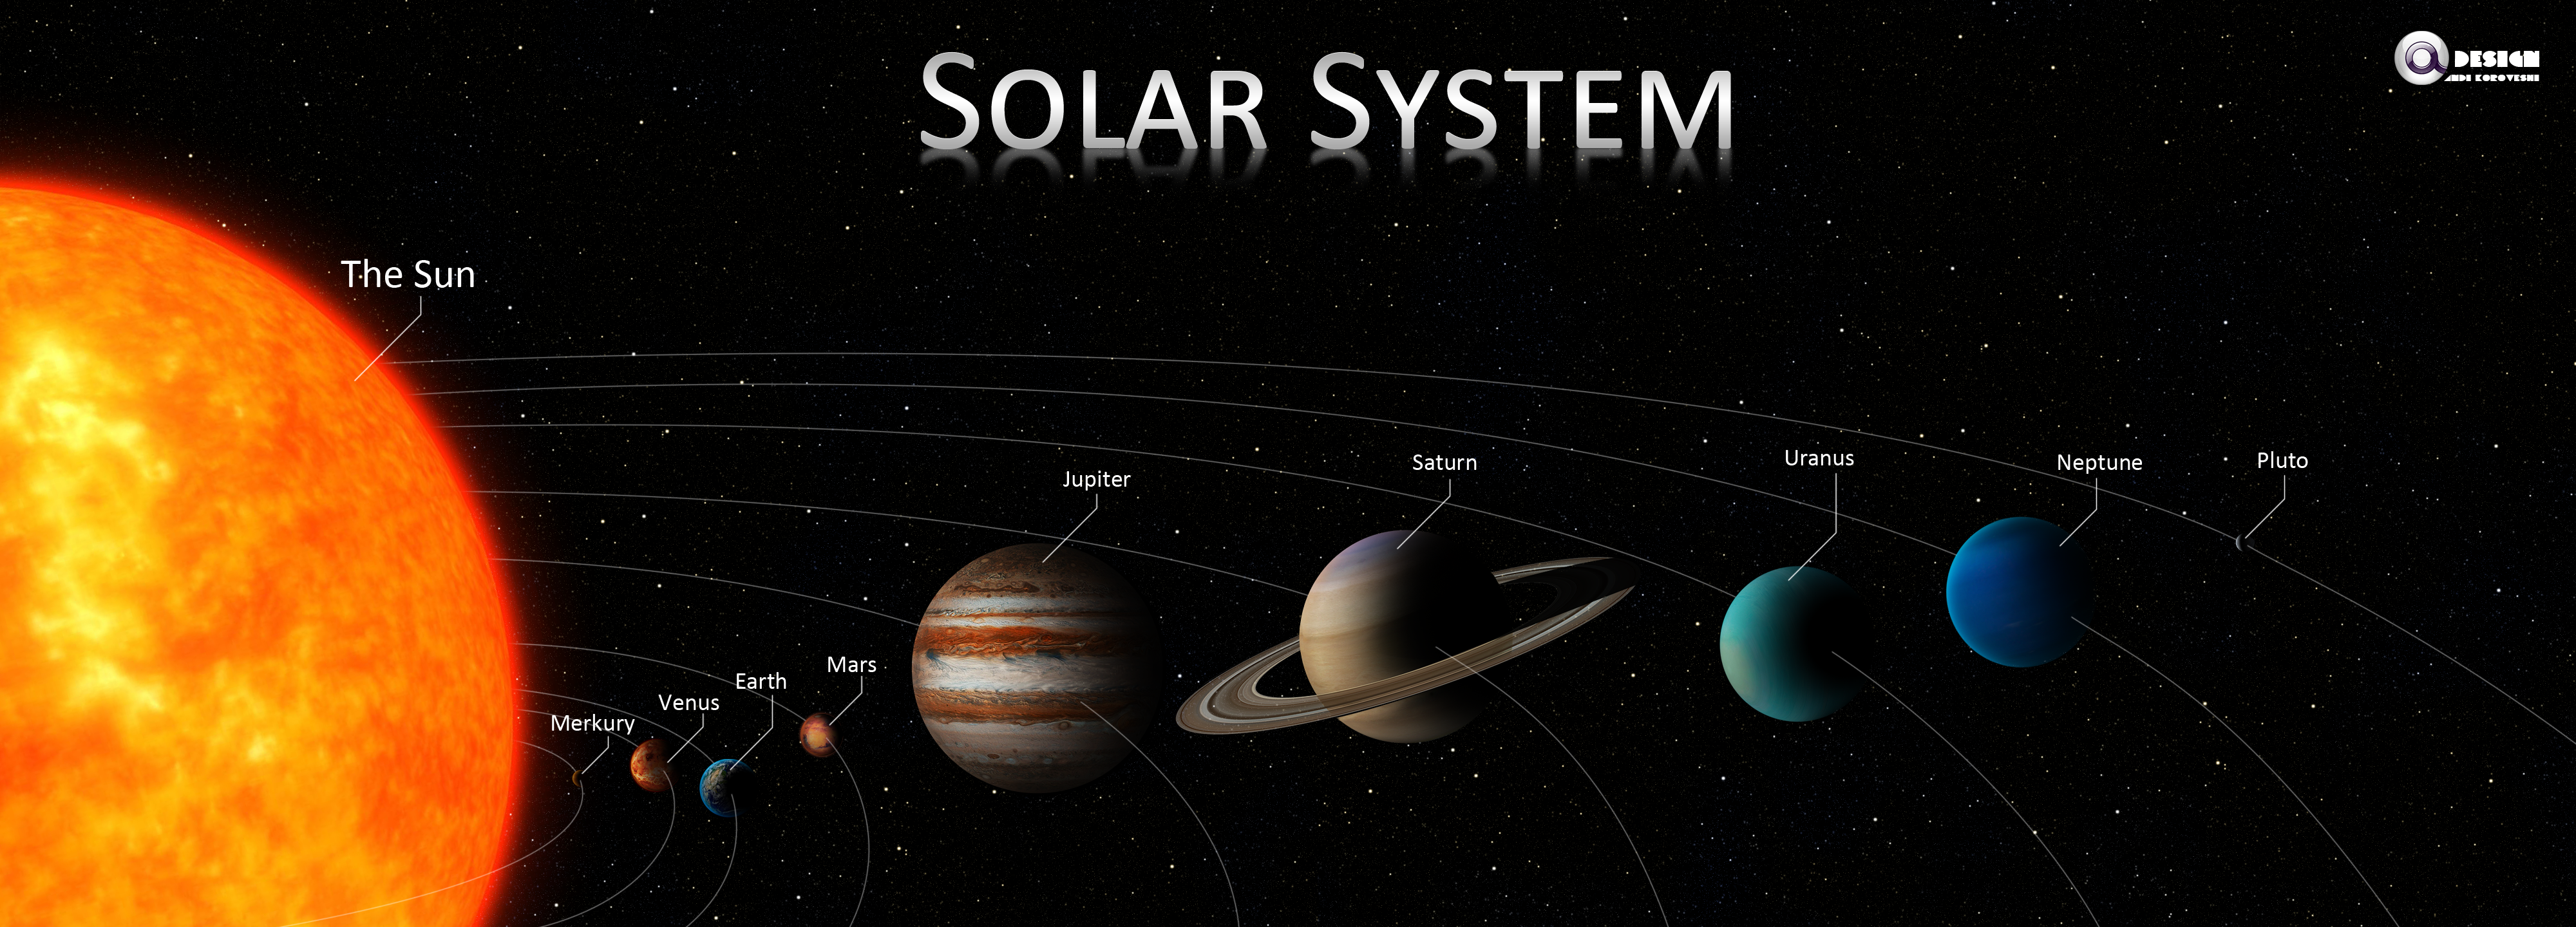 info about the solar system - photo #40